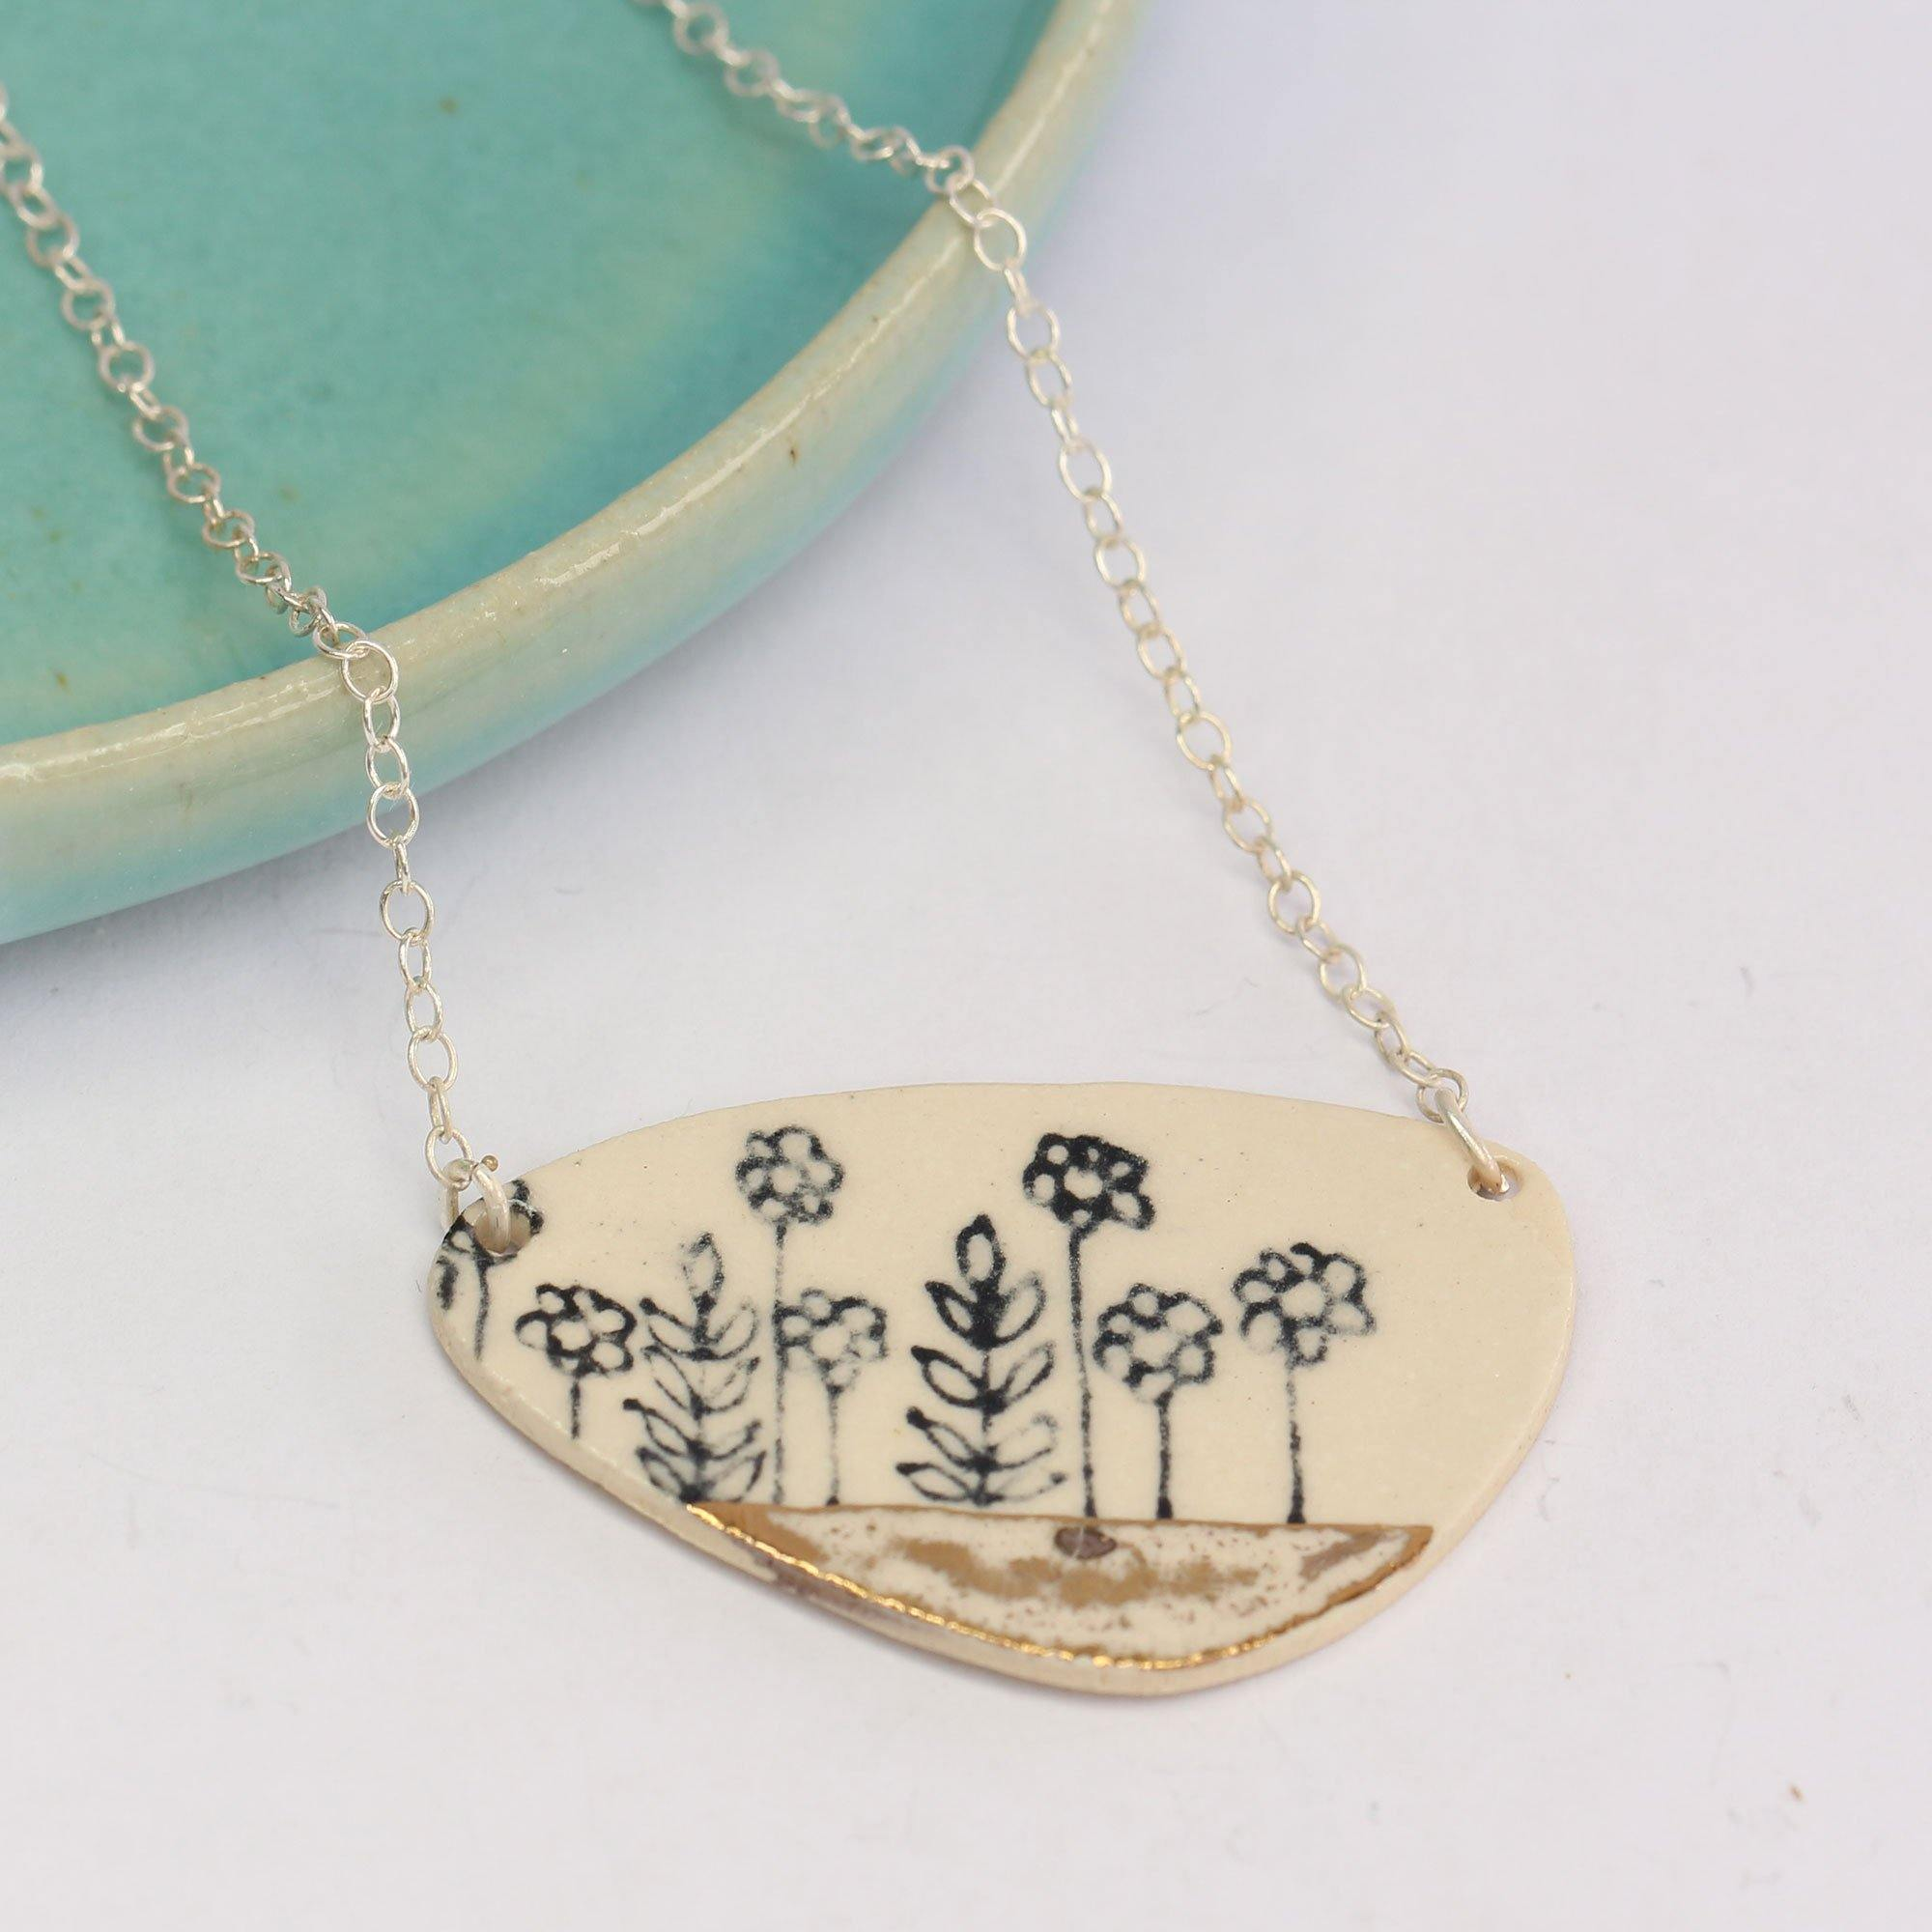 https://cdn.shopify.com/s/files/1/1295/5281/products/a-florals-necklace.jpg?v=1623179582